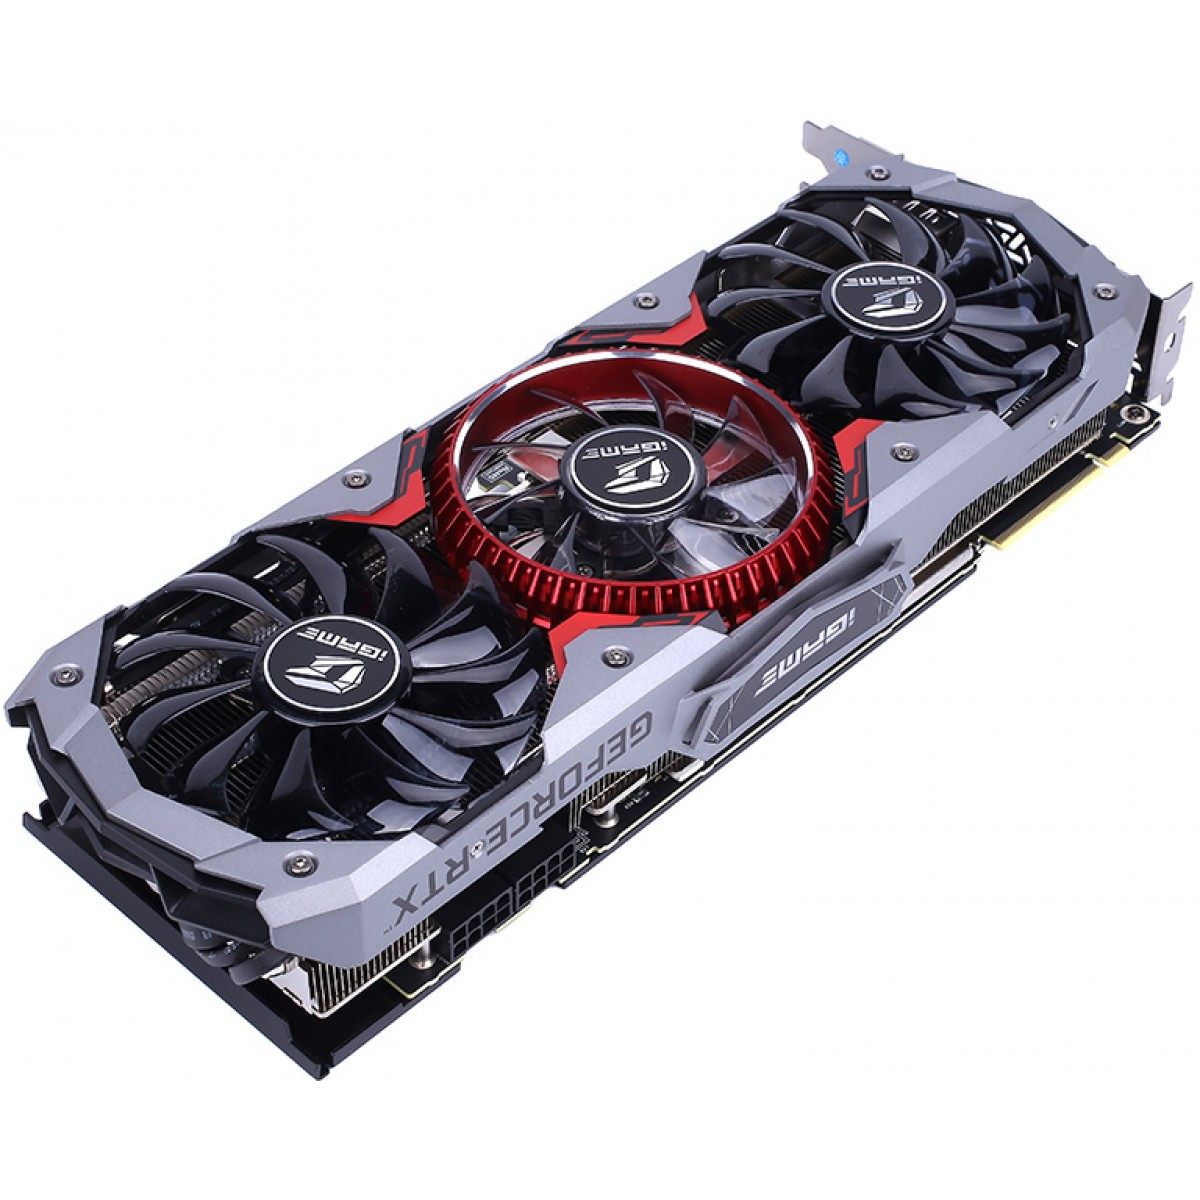 Placa de Vídeo Colorful iGame GeForce RTX 2070 Super Advanced OC-V, 8GB GDDR6, 256Bit